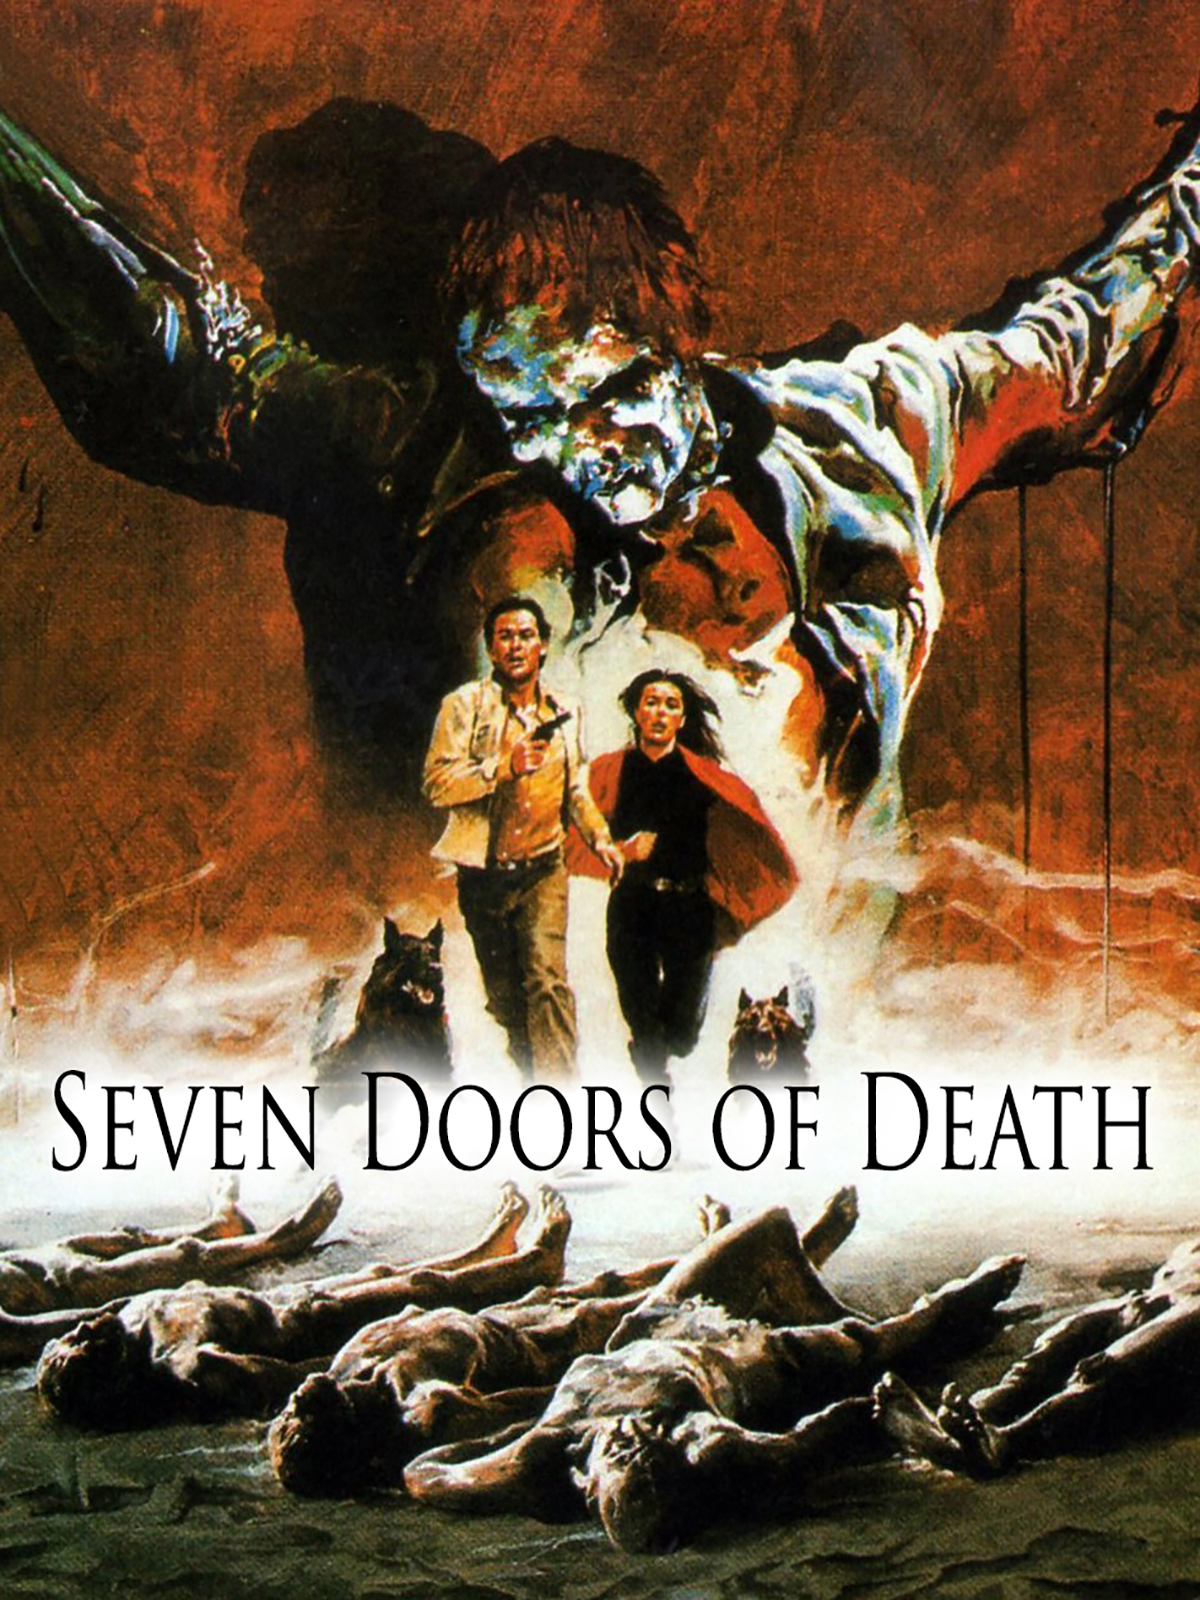 NOW AVAILABLE WORLDWIDE & Seven Doors of Death | SGL Entertainment Releasing